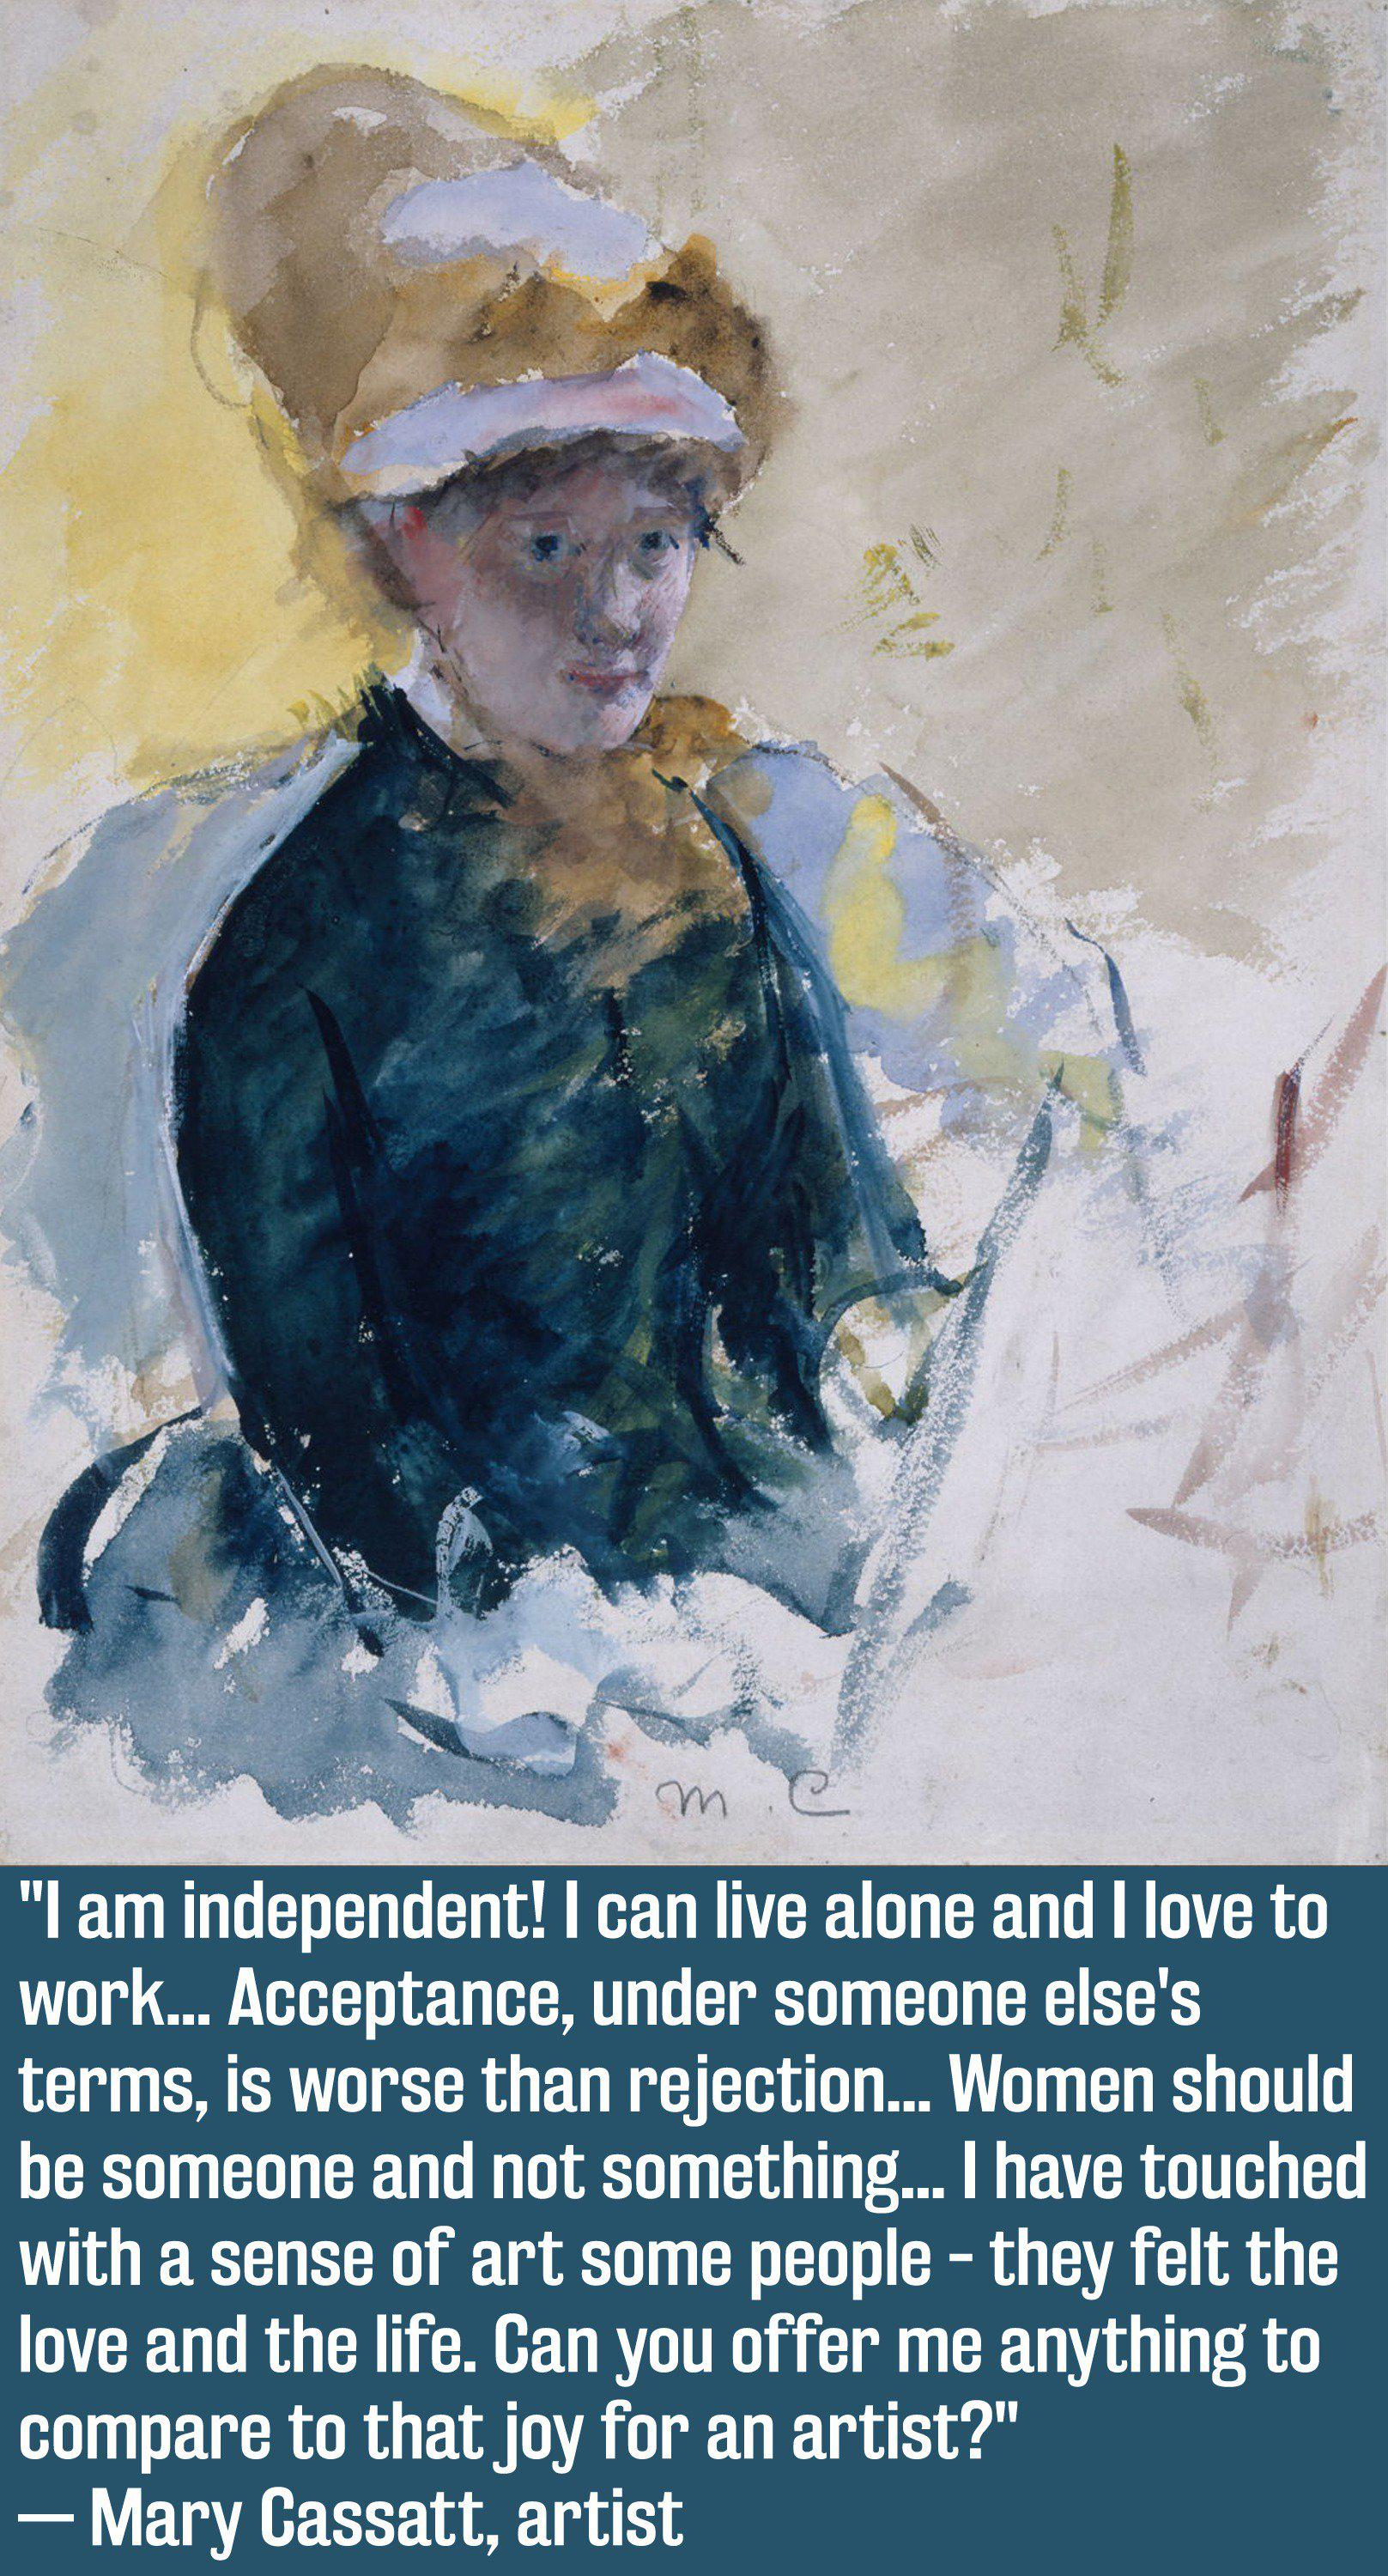 """""""I am independent! I can live alone and I love to work... Acceptance, under someone else's terms, is worse than rejection... Women should be someone and not something... I have touched with a sense of art some people - they felt the love and the life. Can you offer me anything to compare to thatjoy for an artist?"""" — Mary Cassatt, artist https://inspirational.ly"""